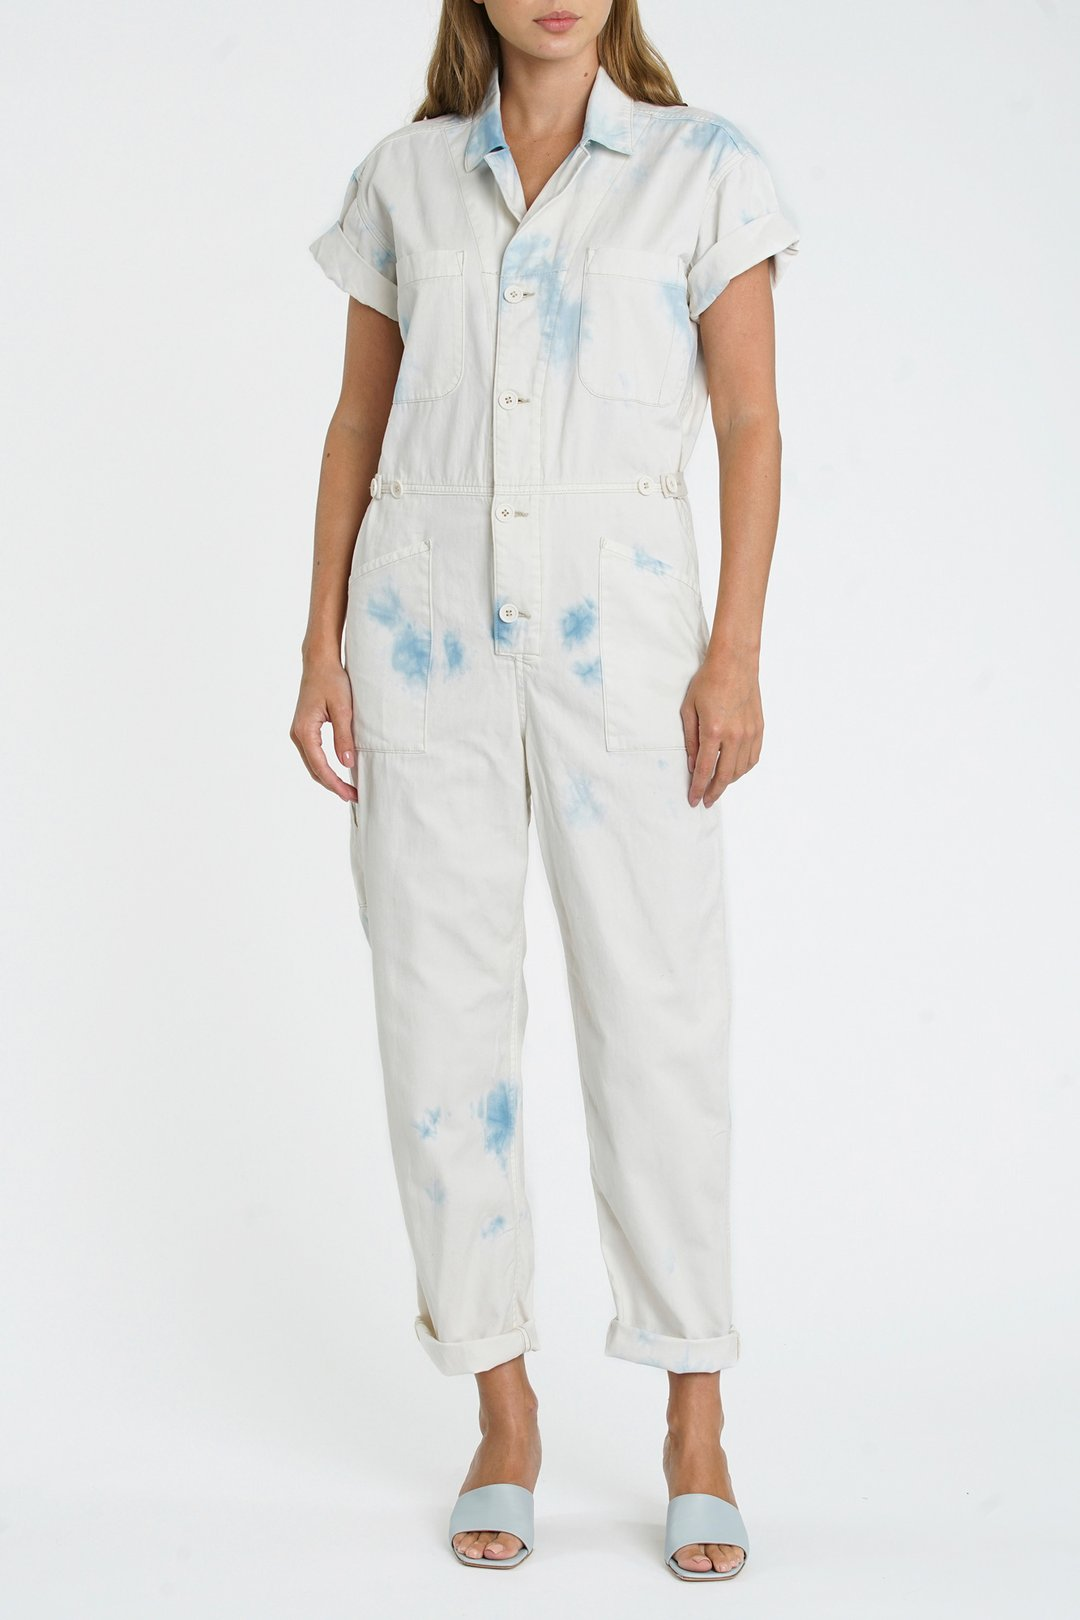 PISTOLA GROVER SHORT SLEEVE FIELDSUIT - BLUE SURF